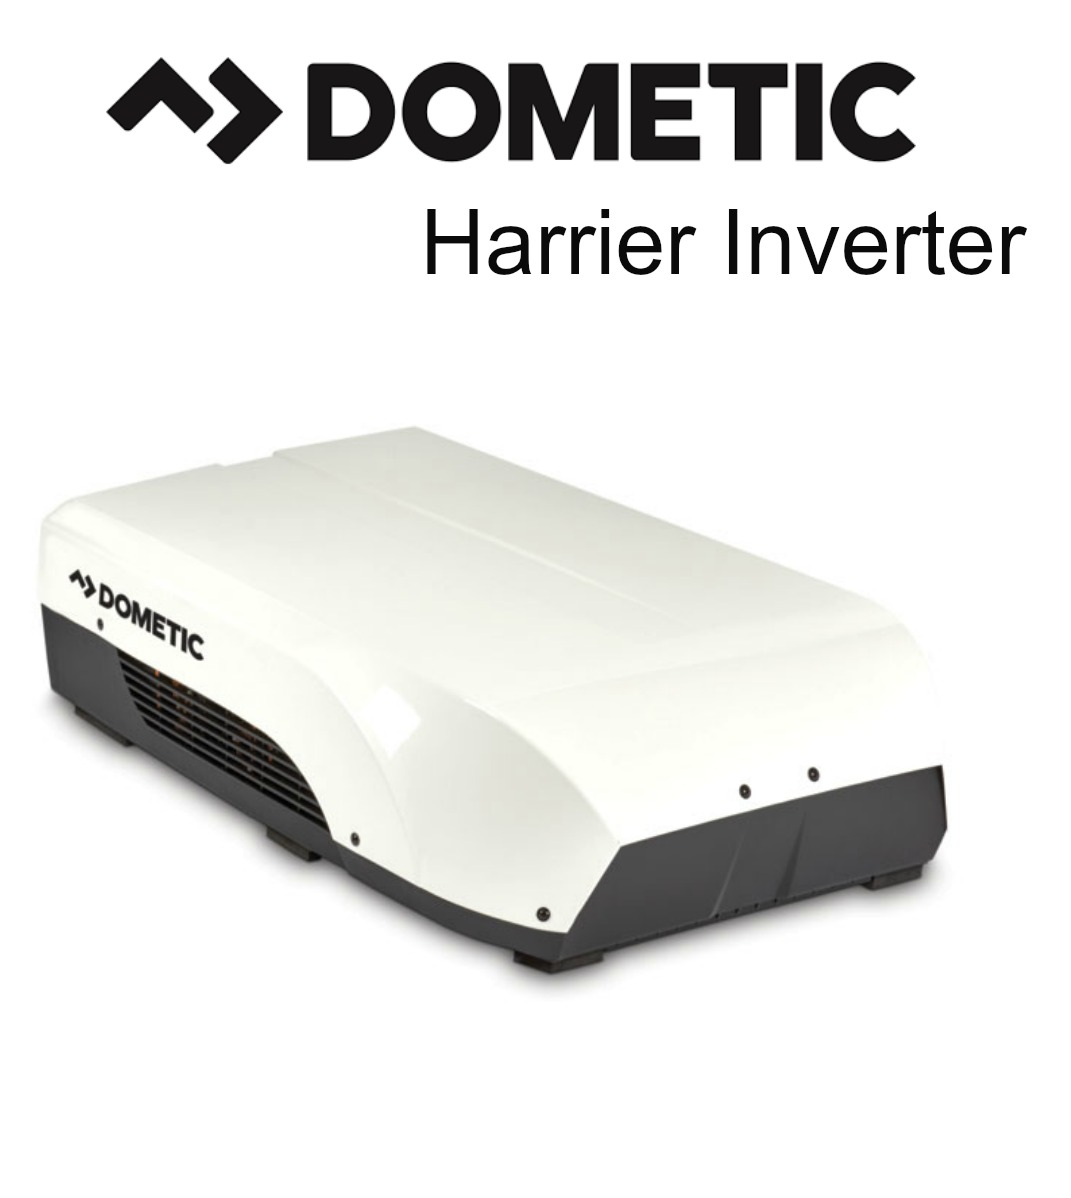 Dometic Harrier Inverter Reverse Cycle Air Conditioner